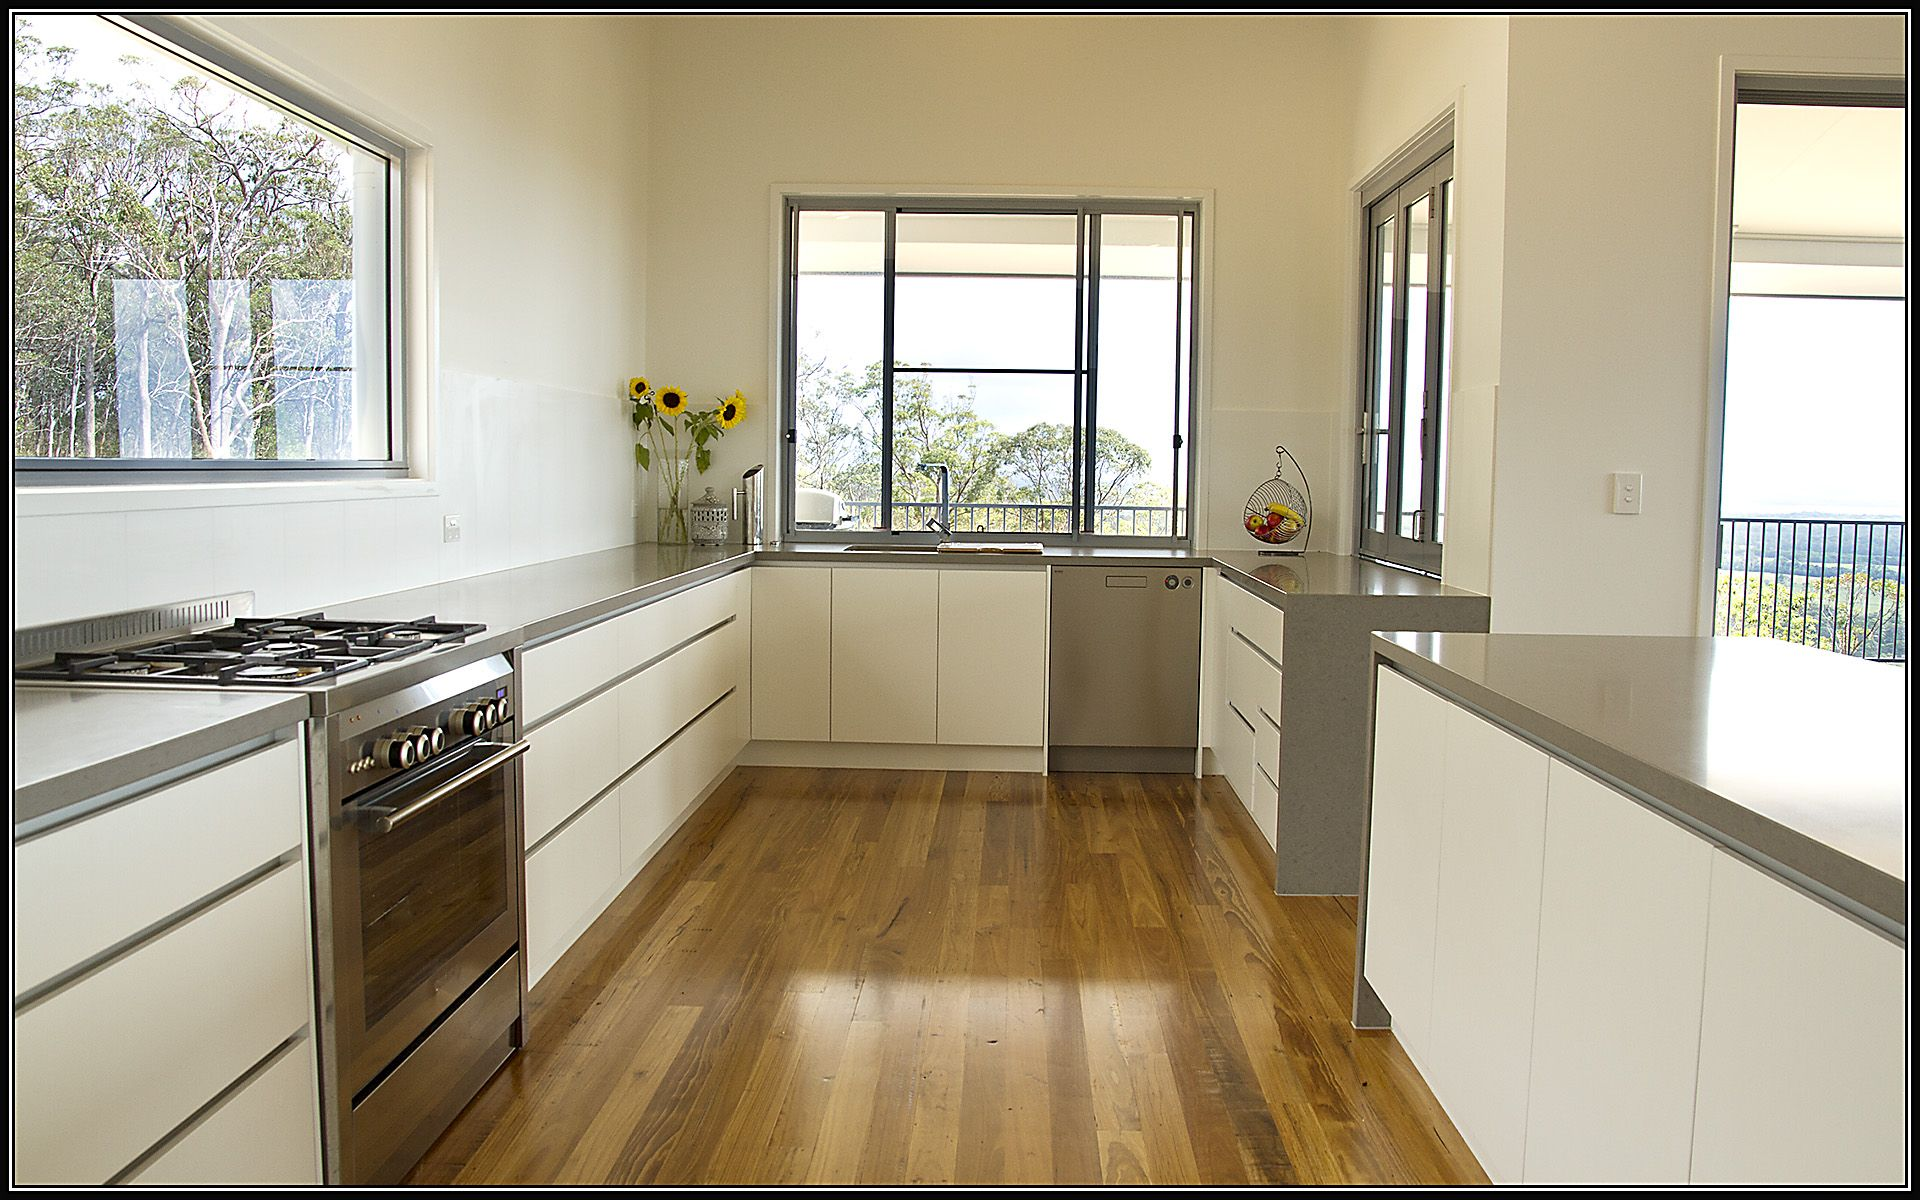 modern kitchen colour schemes incoming search terms:modern kitchen